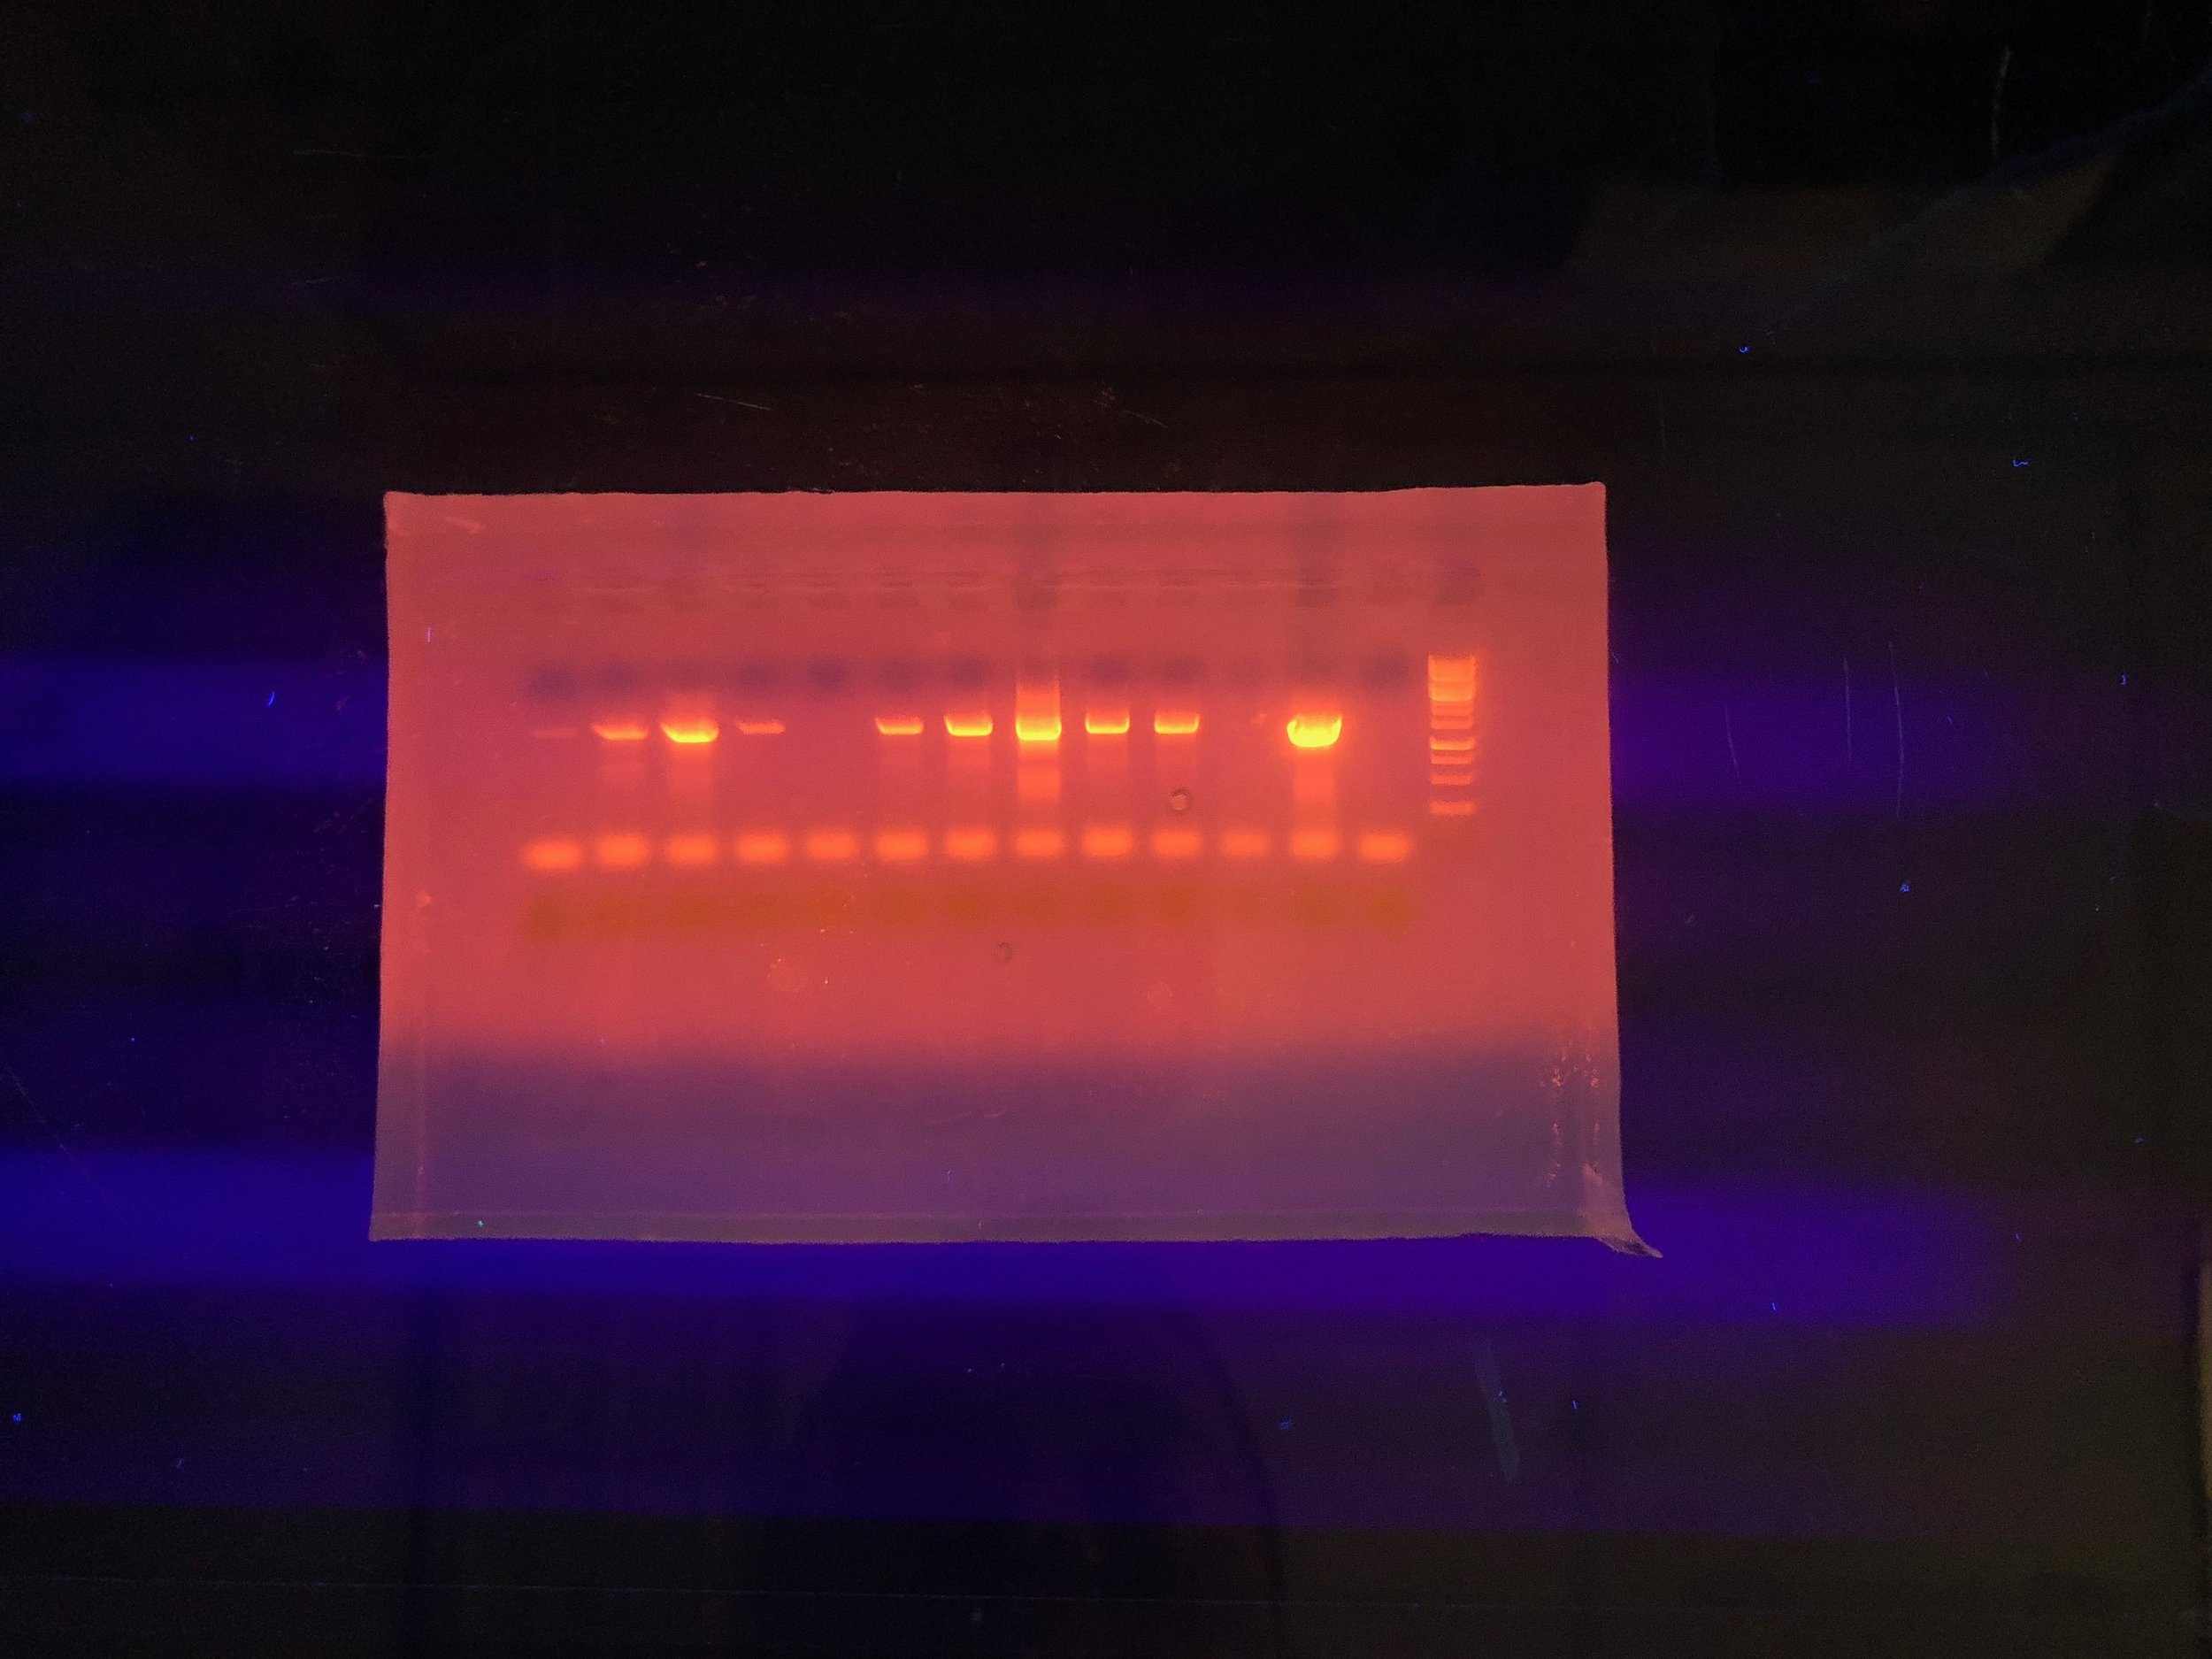 Each of those glowing lines represents a sample of DNA, and if it's glowing, it means what we extracted was DNA from bacteria. This is a good thing! Photo credit: Jason Baer